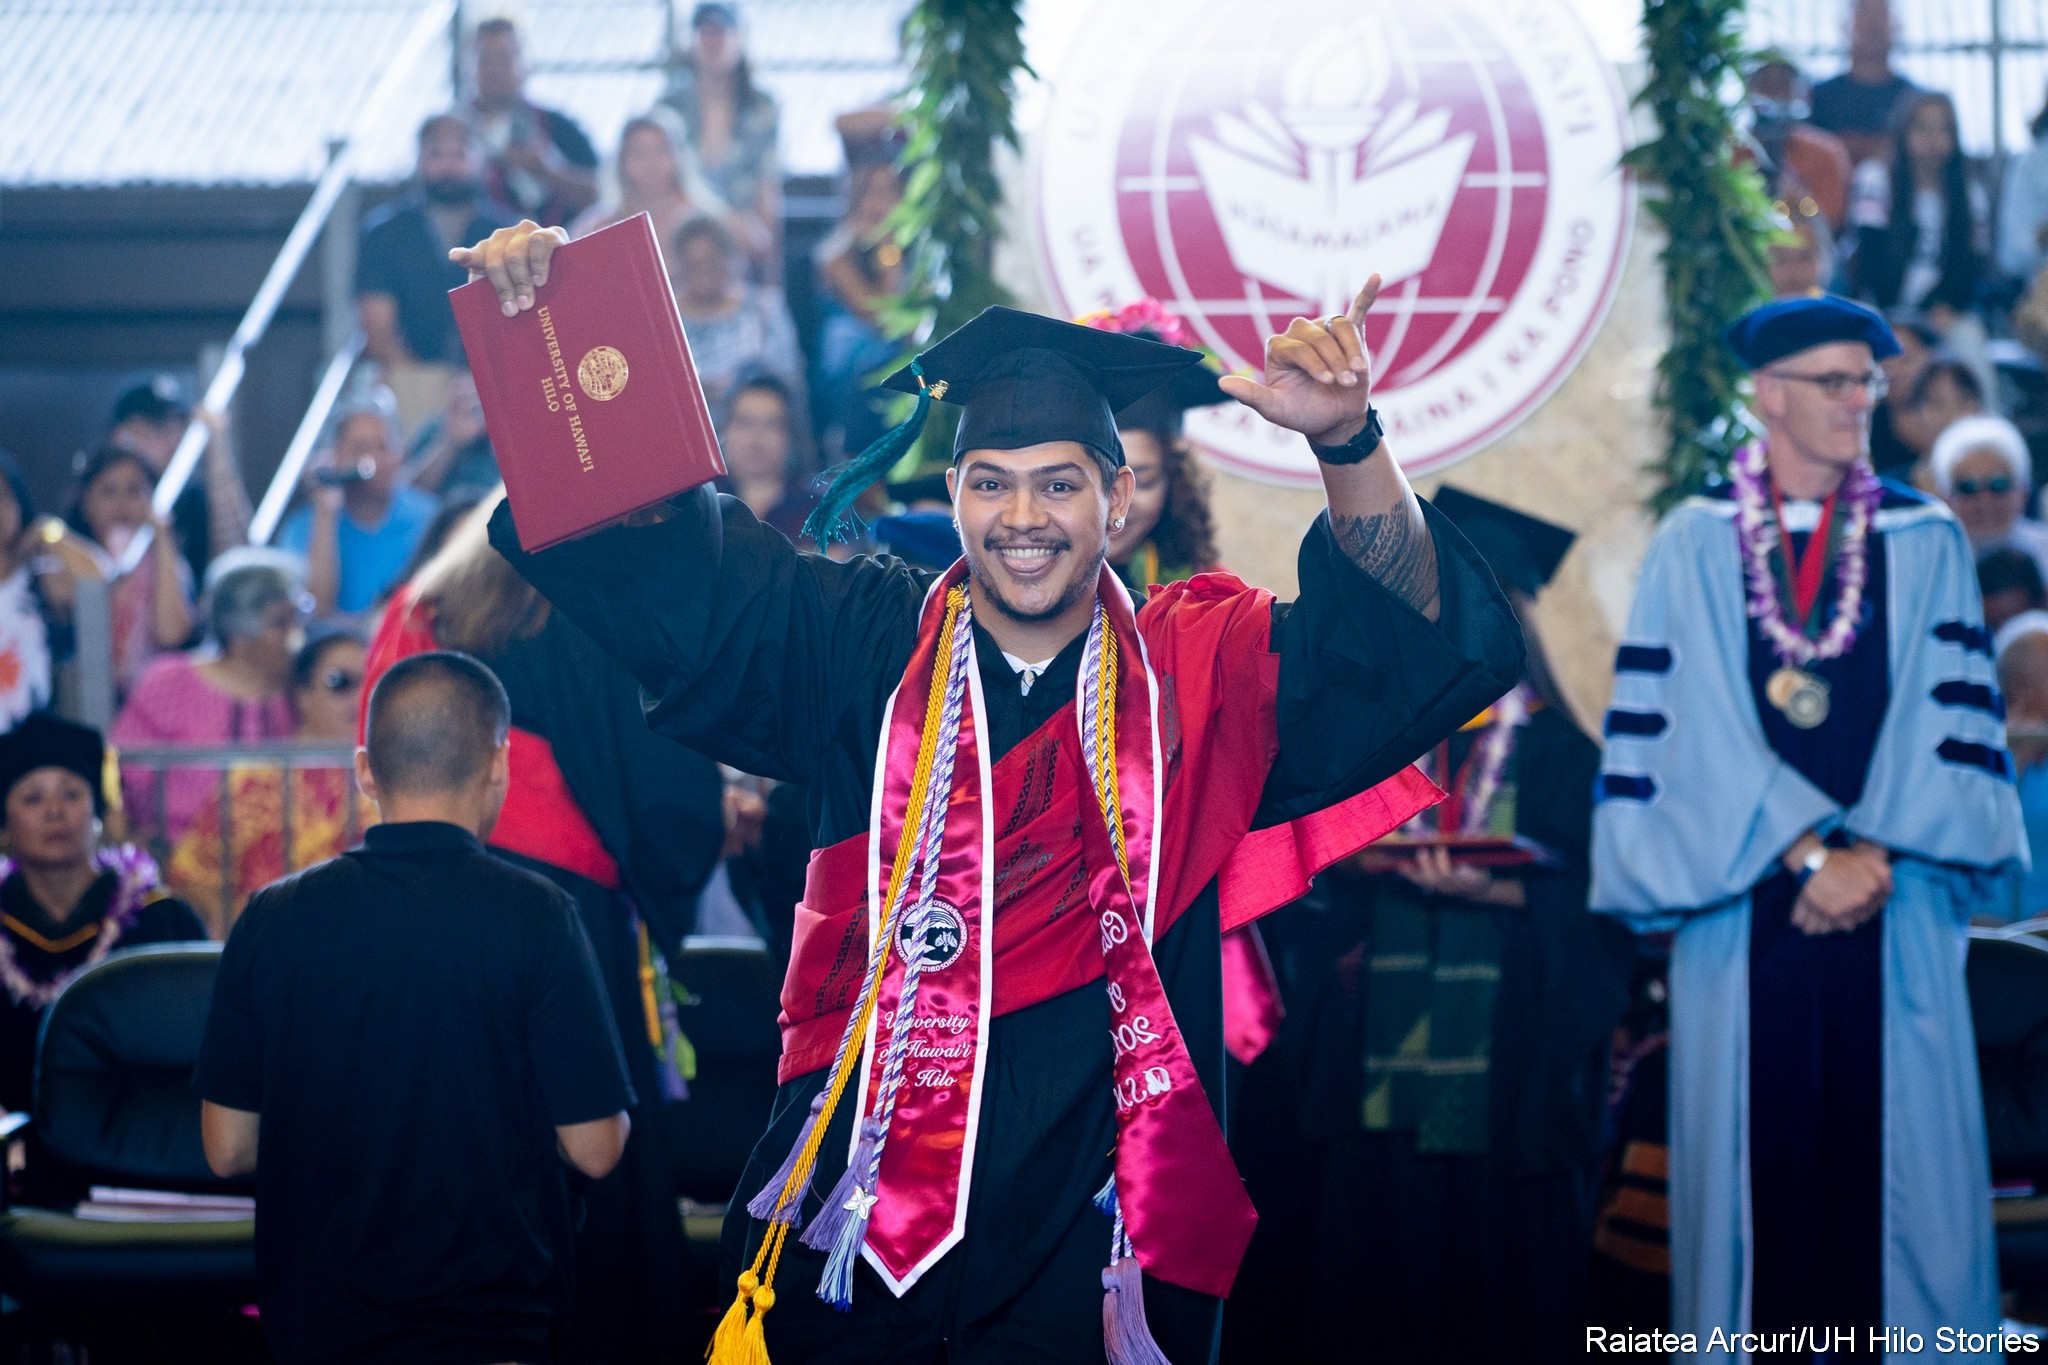 Male graduate leaving dais with diploma held high in right hand.